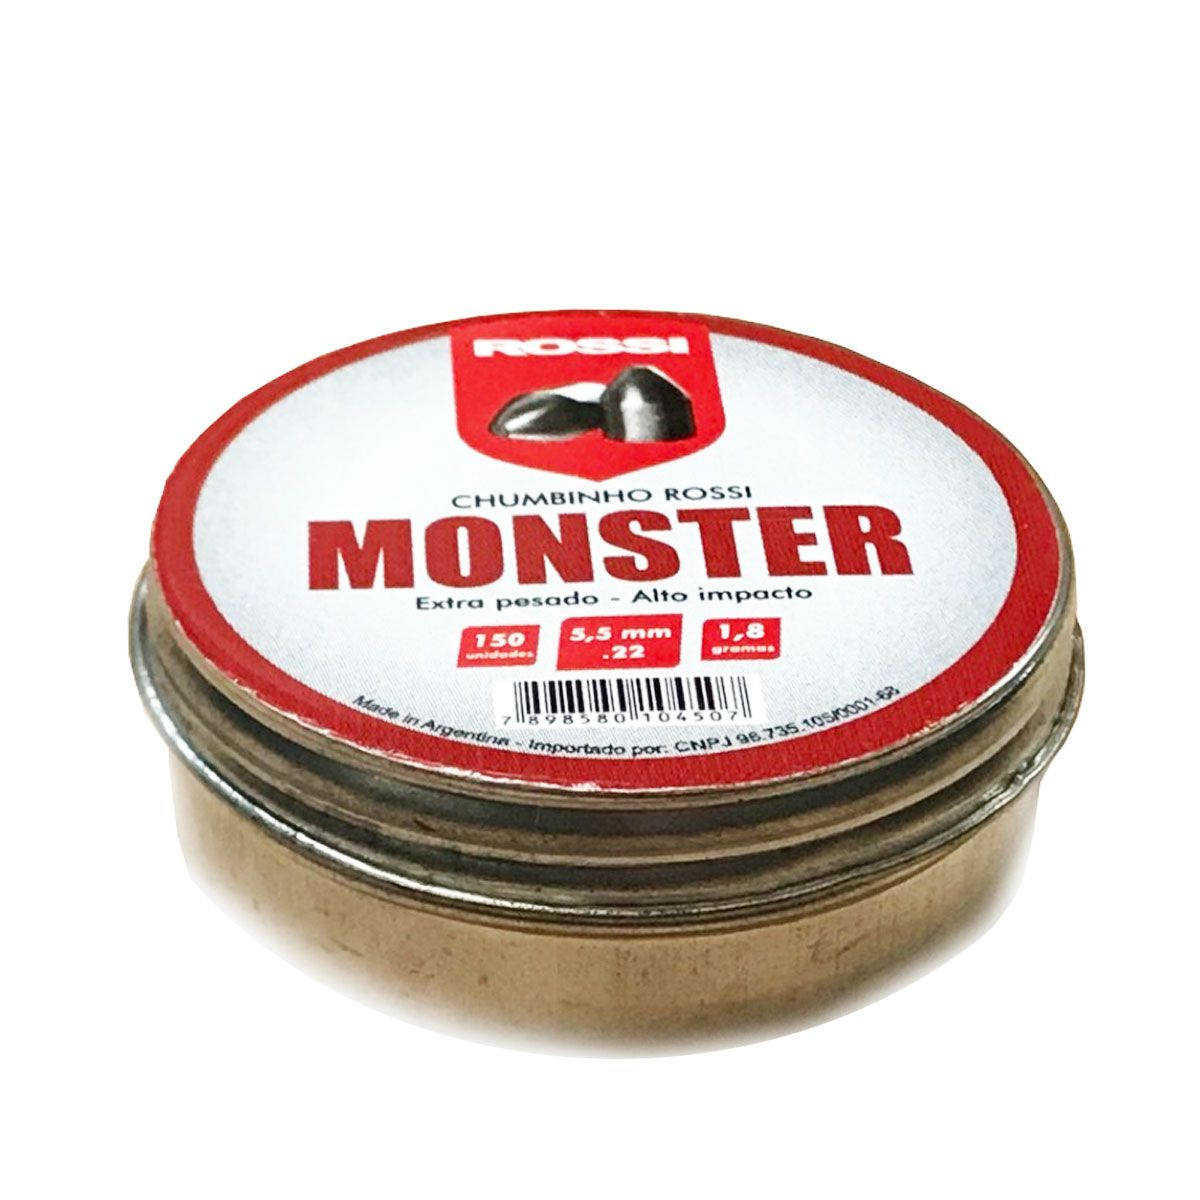 Chumbinho Rossi Monster 5,5mm 150 unidades